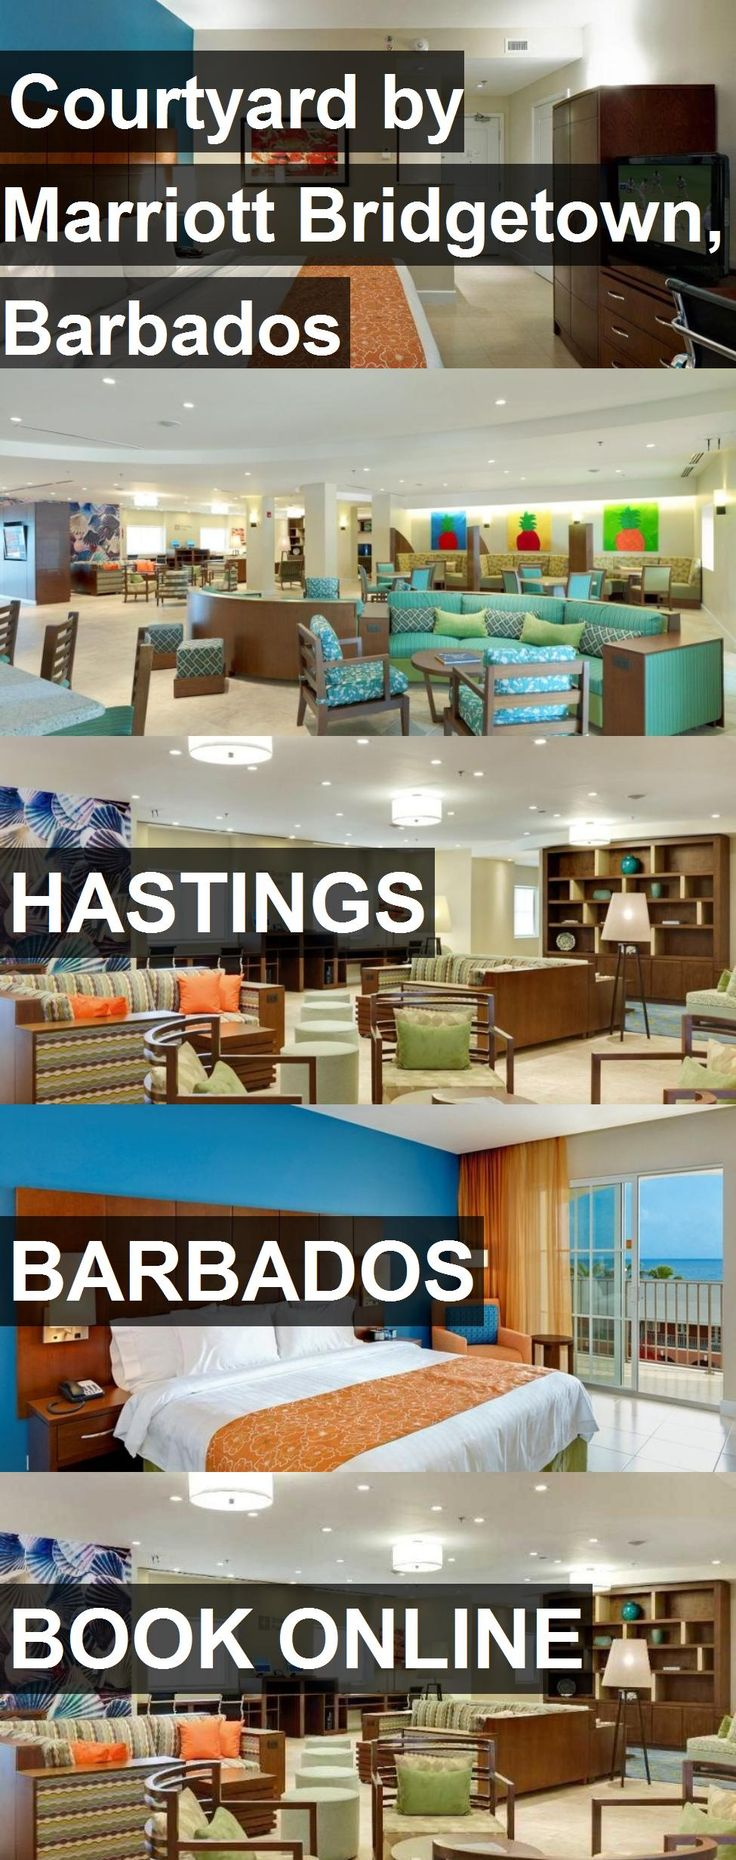 Hotel Courtyard by Marriott Bridgetown, Barbados in Hastings, Barbados. For more information, photos, reviews and best prices please follow the link. #Barbados #Hastings #travel #vacation #hotel